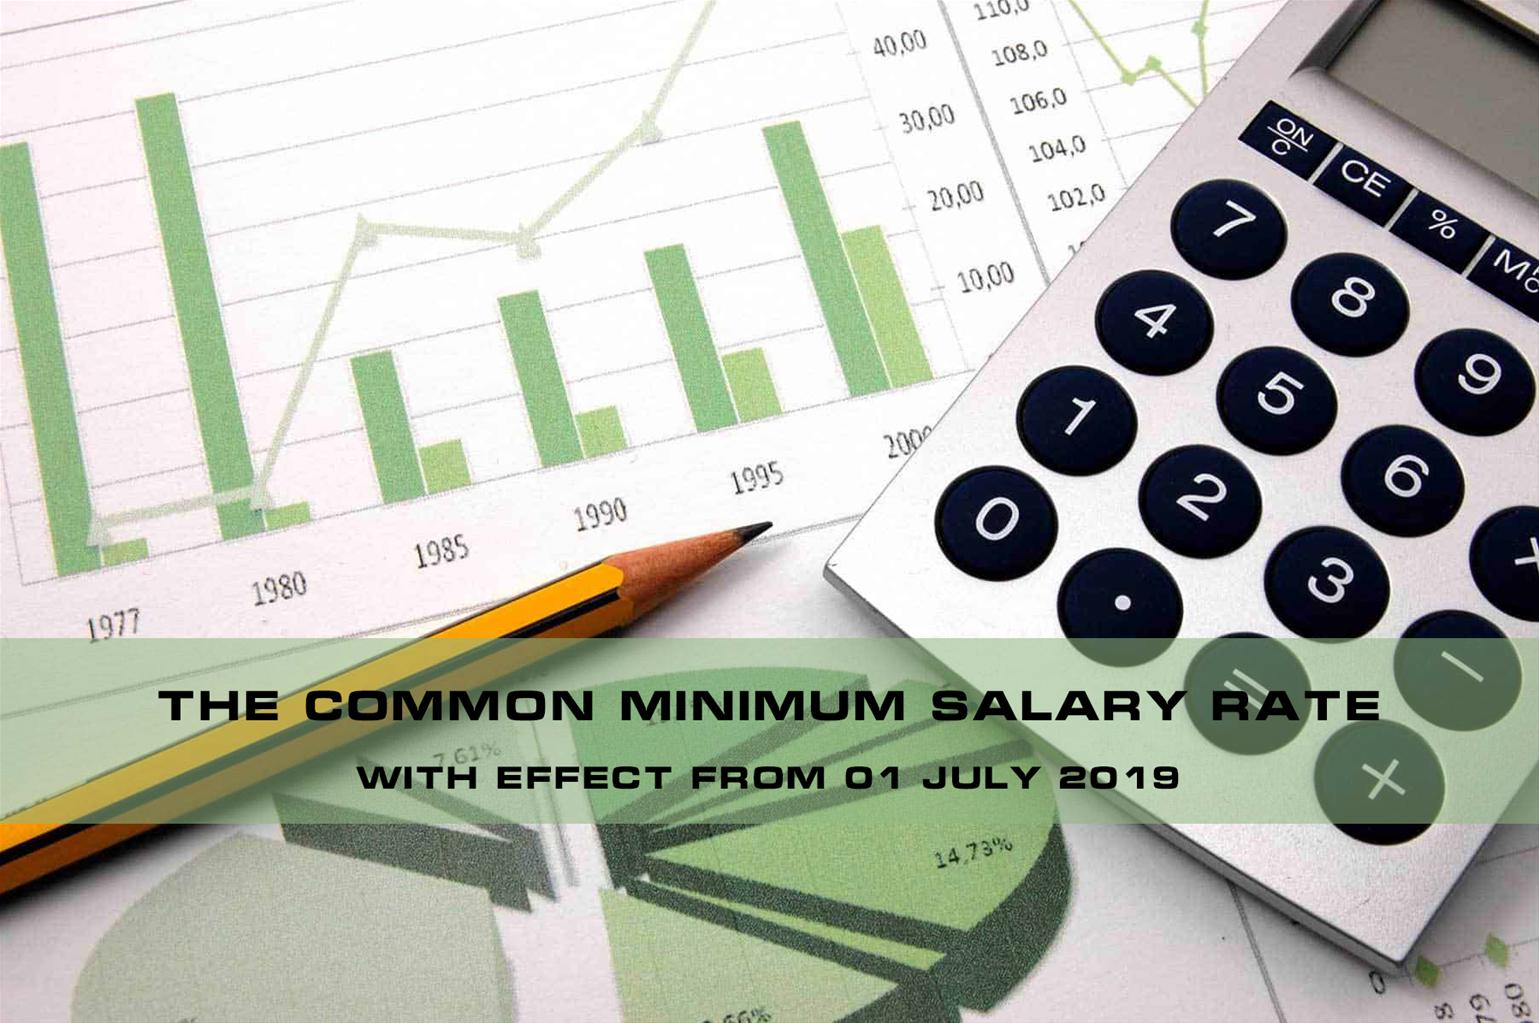 The common minimum salary rate with effect from 01 July 2019